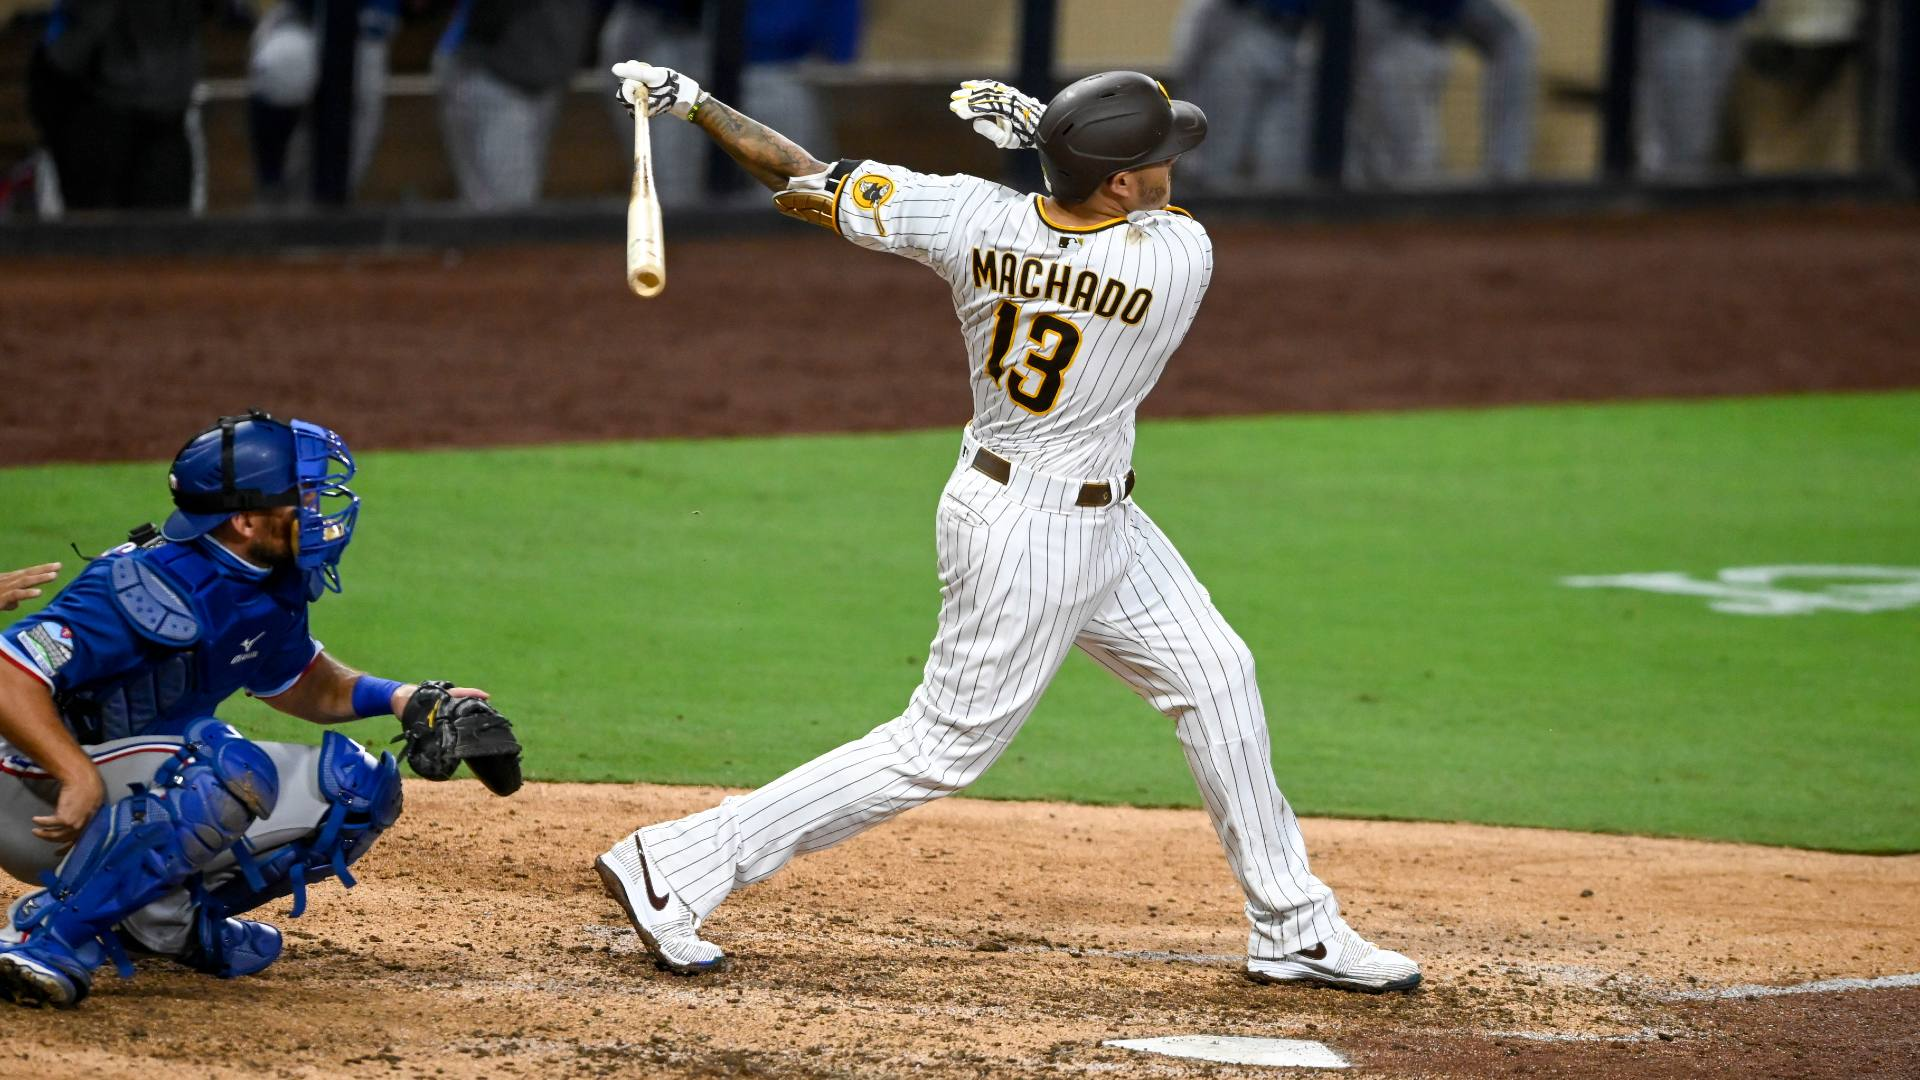 Extra-innings home runs are disappearing. Is MLB's Magic Runner rule the reason?